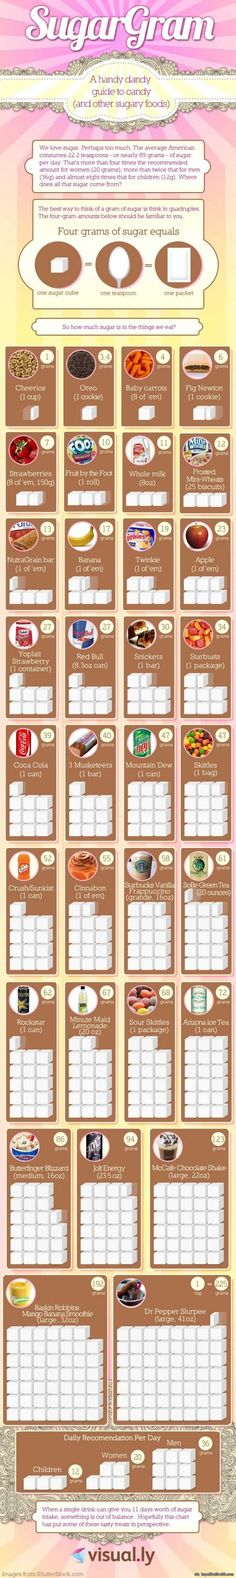 Here's an health infographic to help understand what amount of sure is actually healthy for Men, Women, and Children per day. You'd be surprised to know carrots have a lot of sugar.